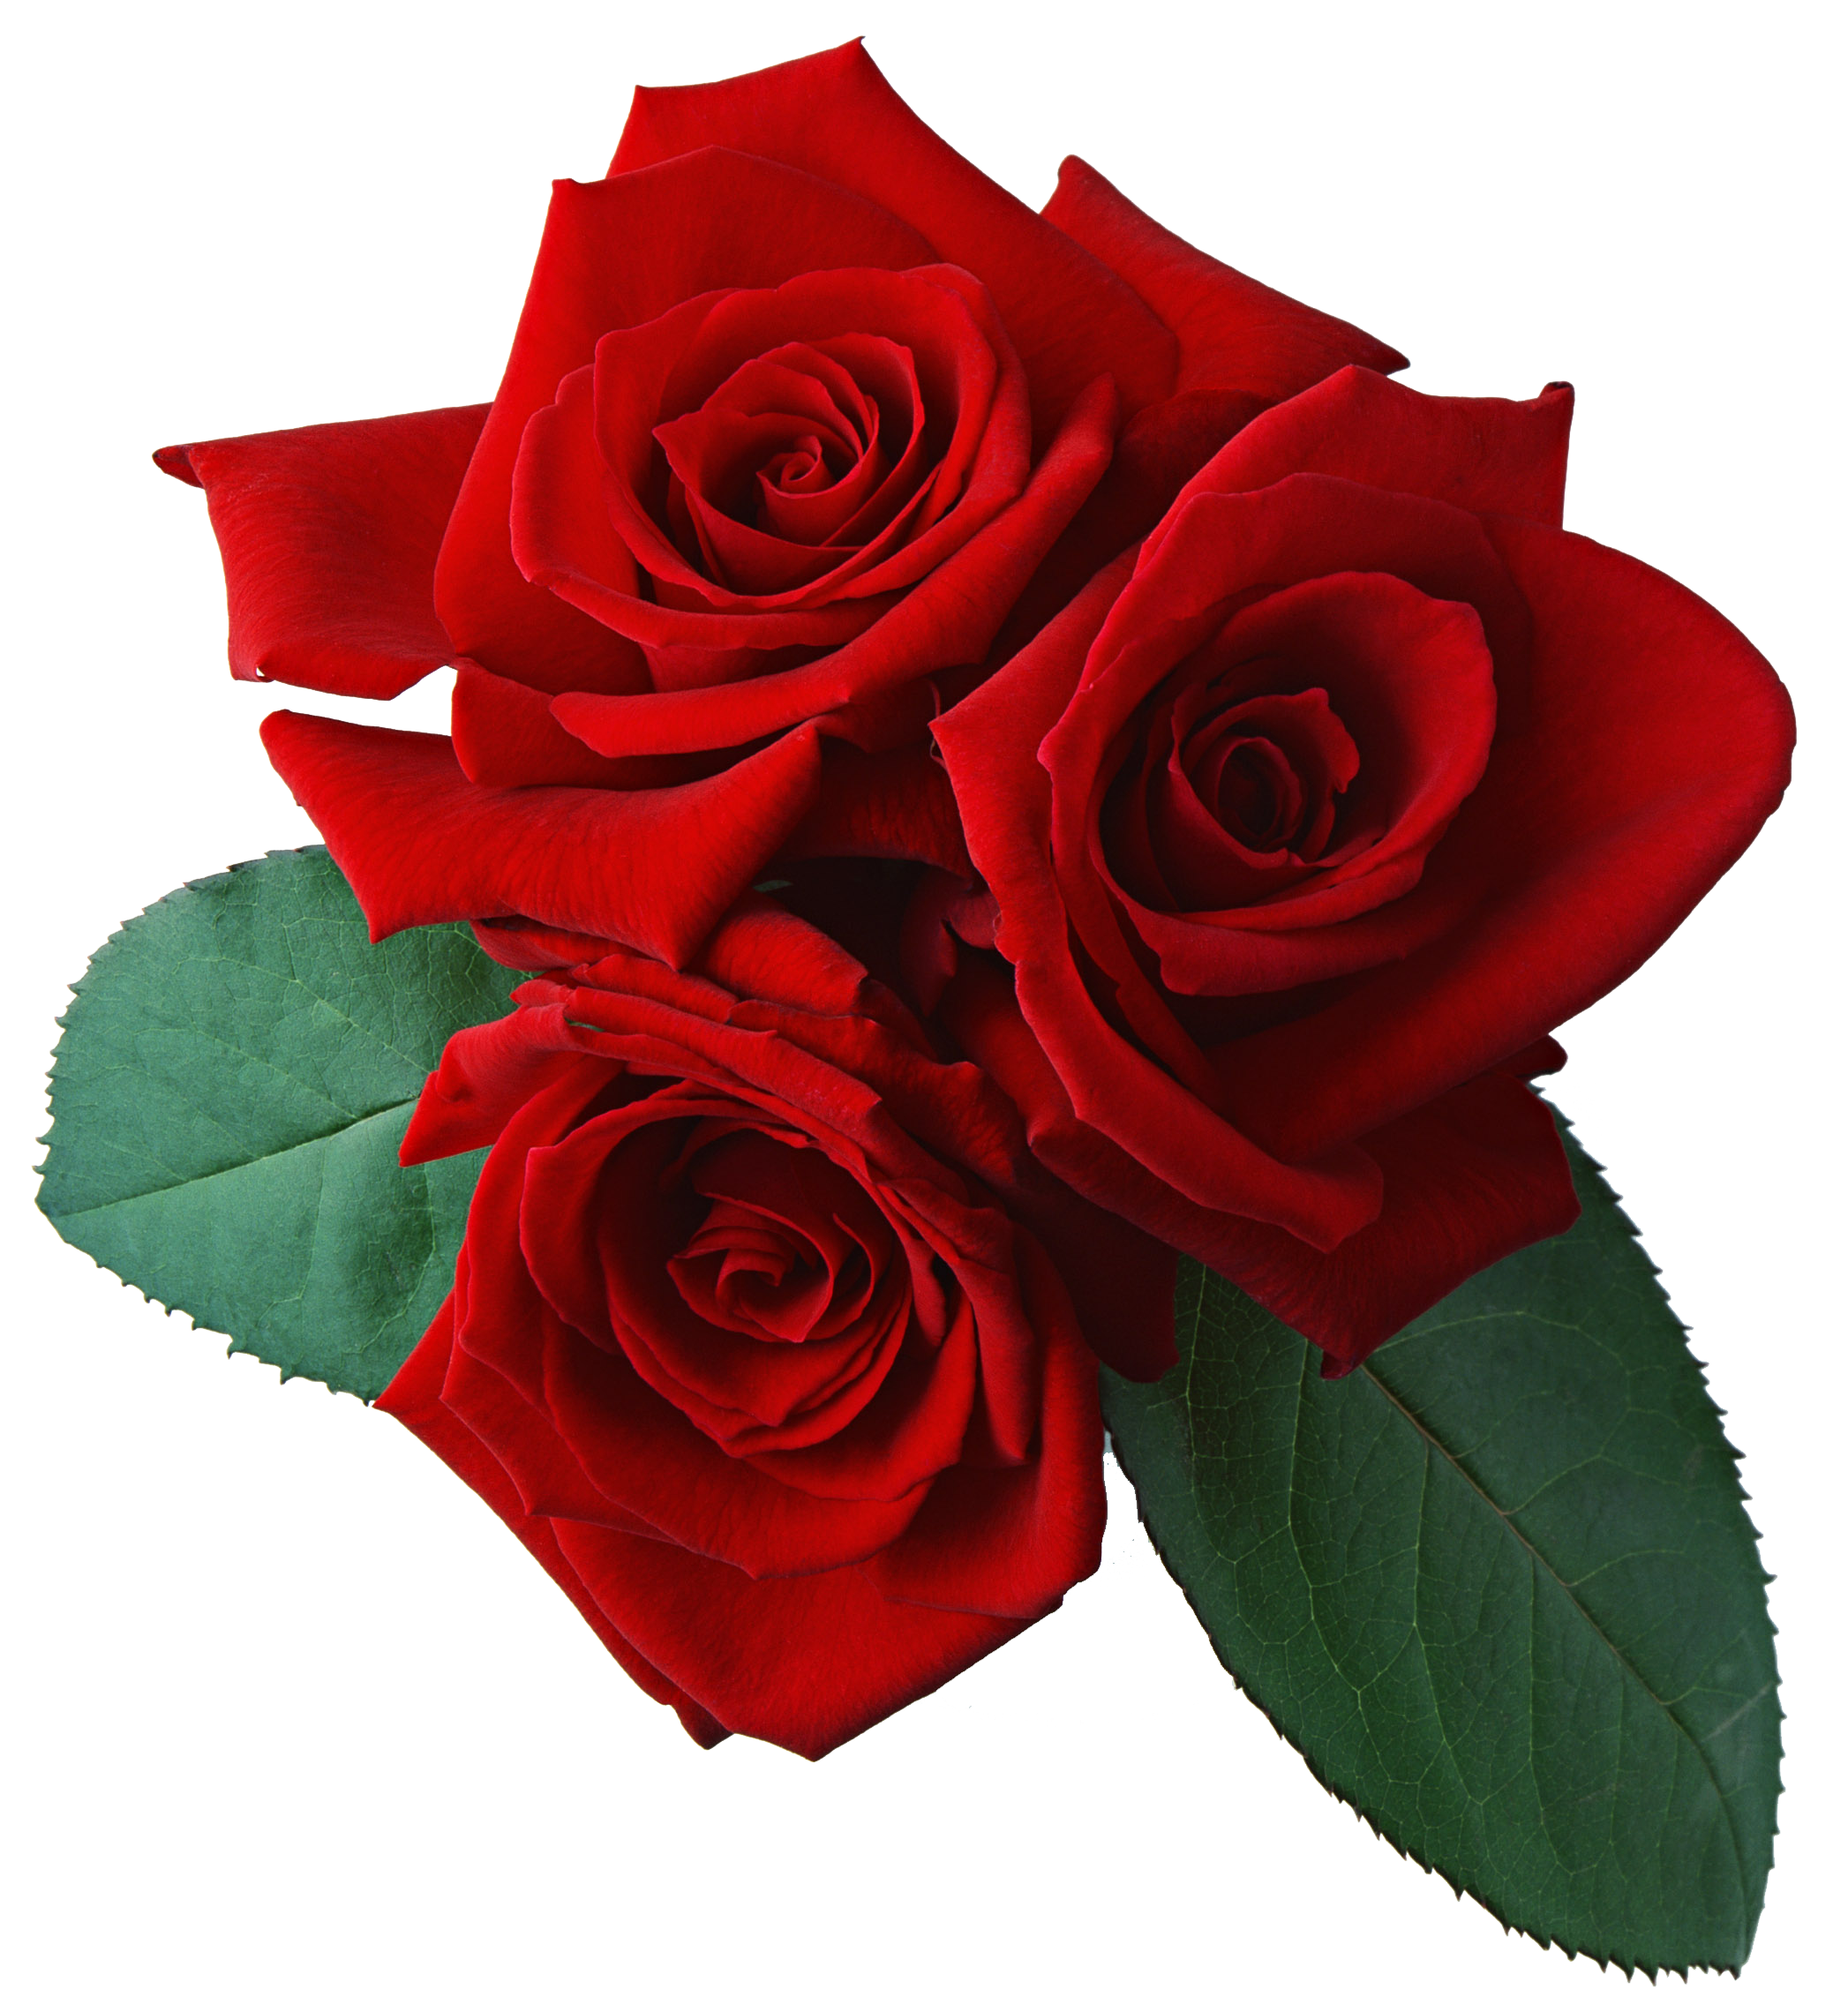 Rose png image, free picture download